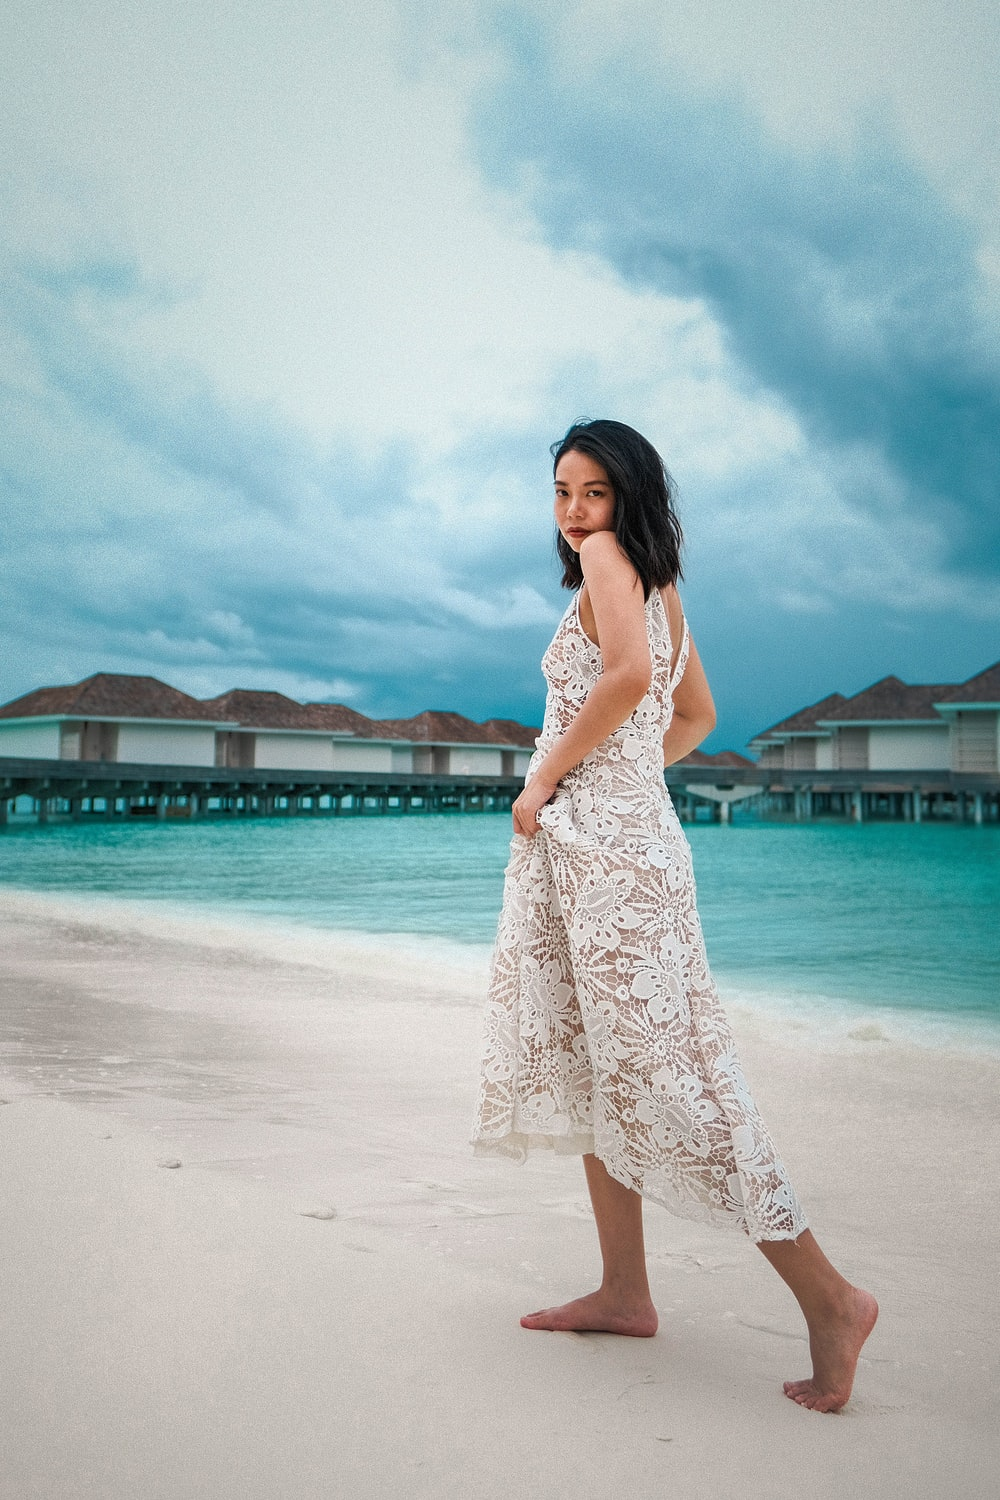 woman in white and blue floral sleeveless dress standing on beach during daytime